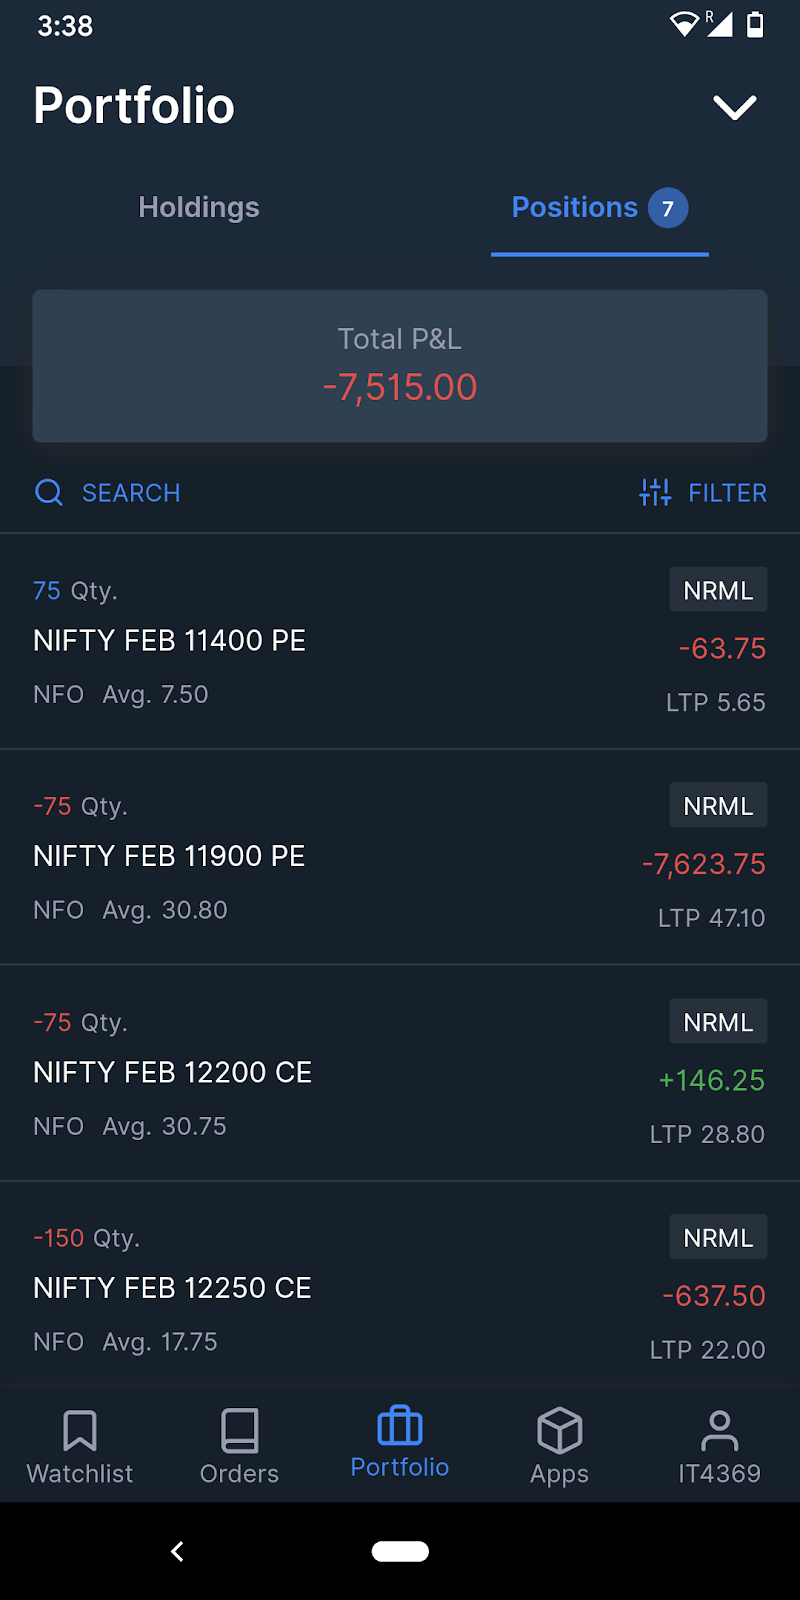 P&L for 18 Feb